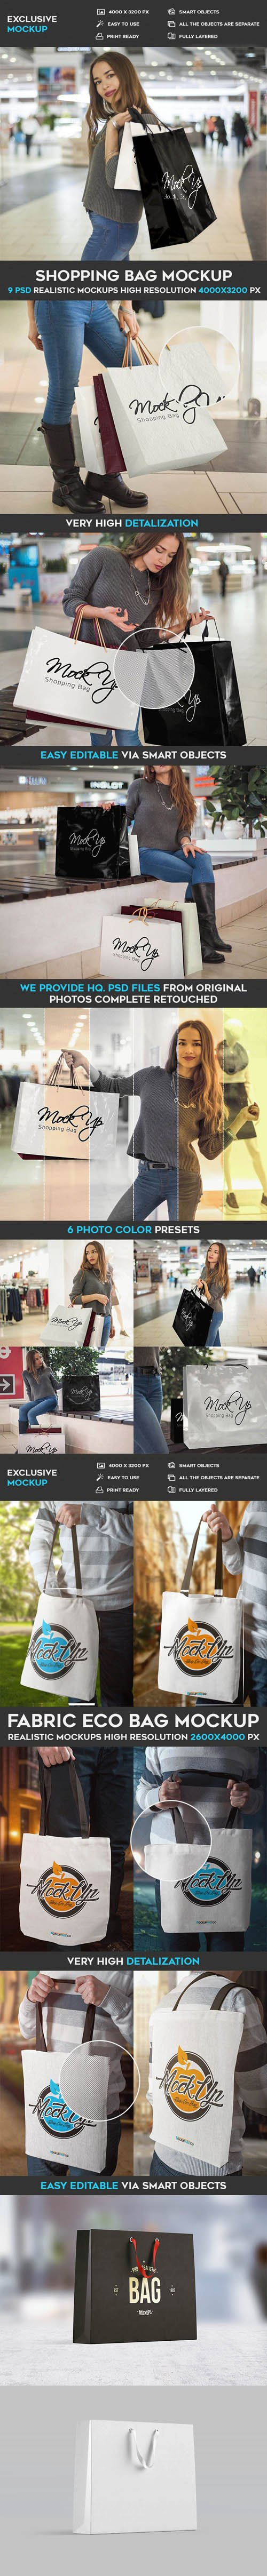 Paper Shopping Bag - 16 Mockups PSD Templates